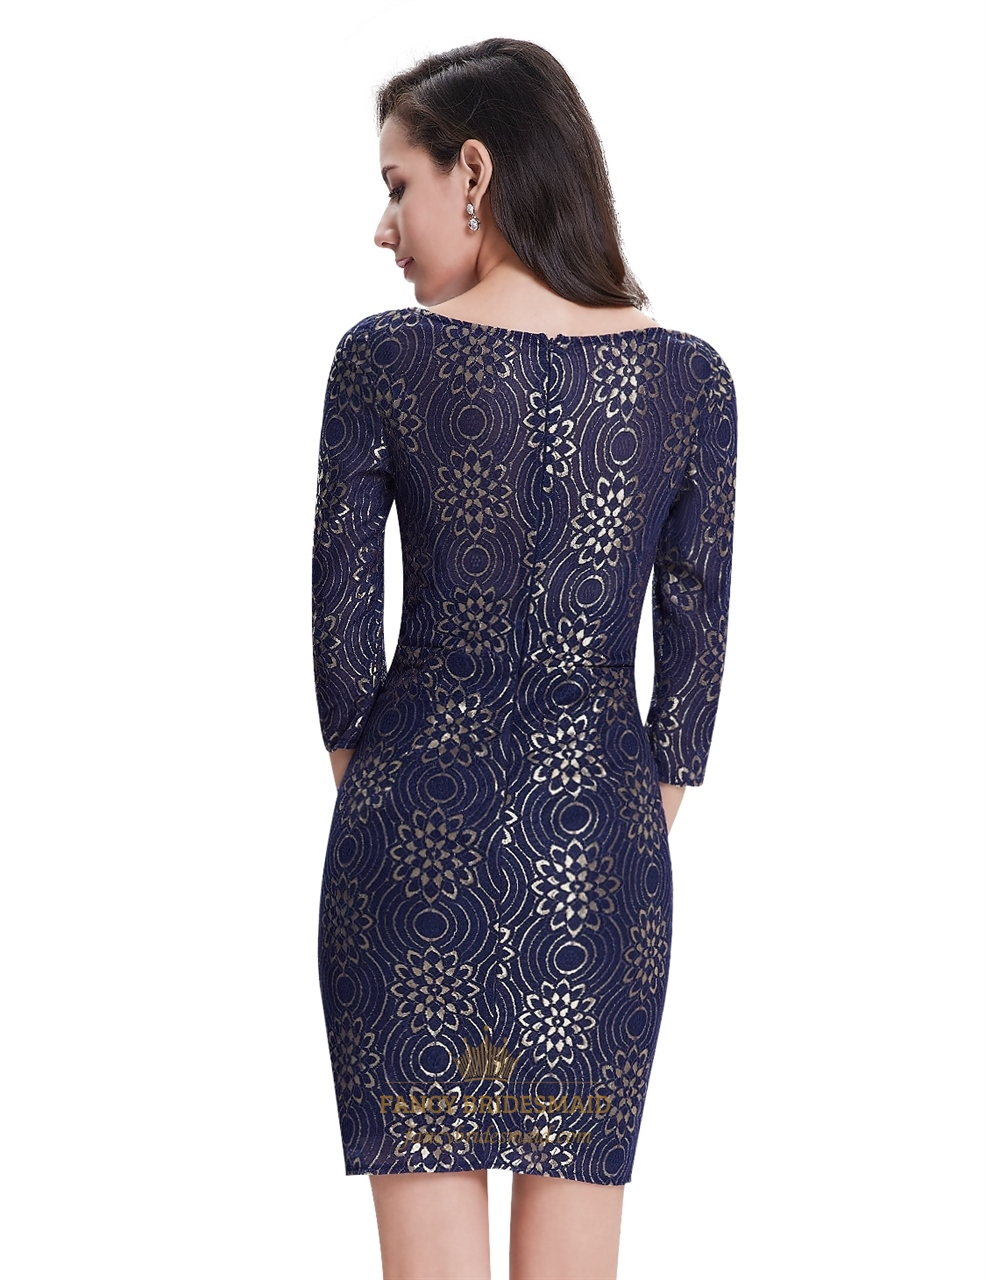 4 Length Dress Navy Lace Vintage 3 Sleeve